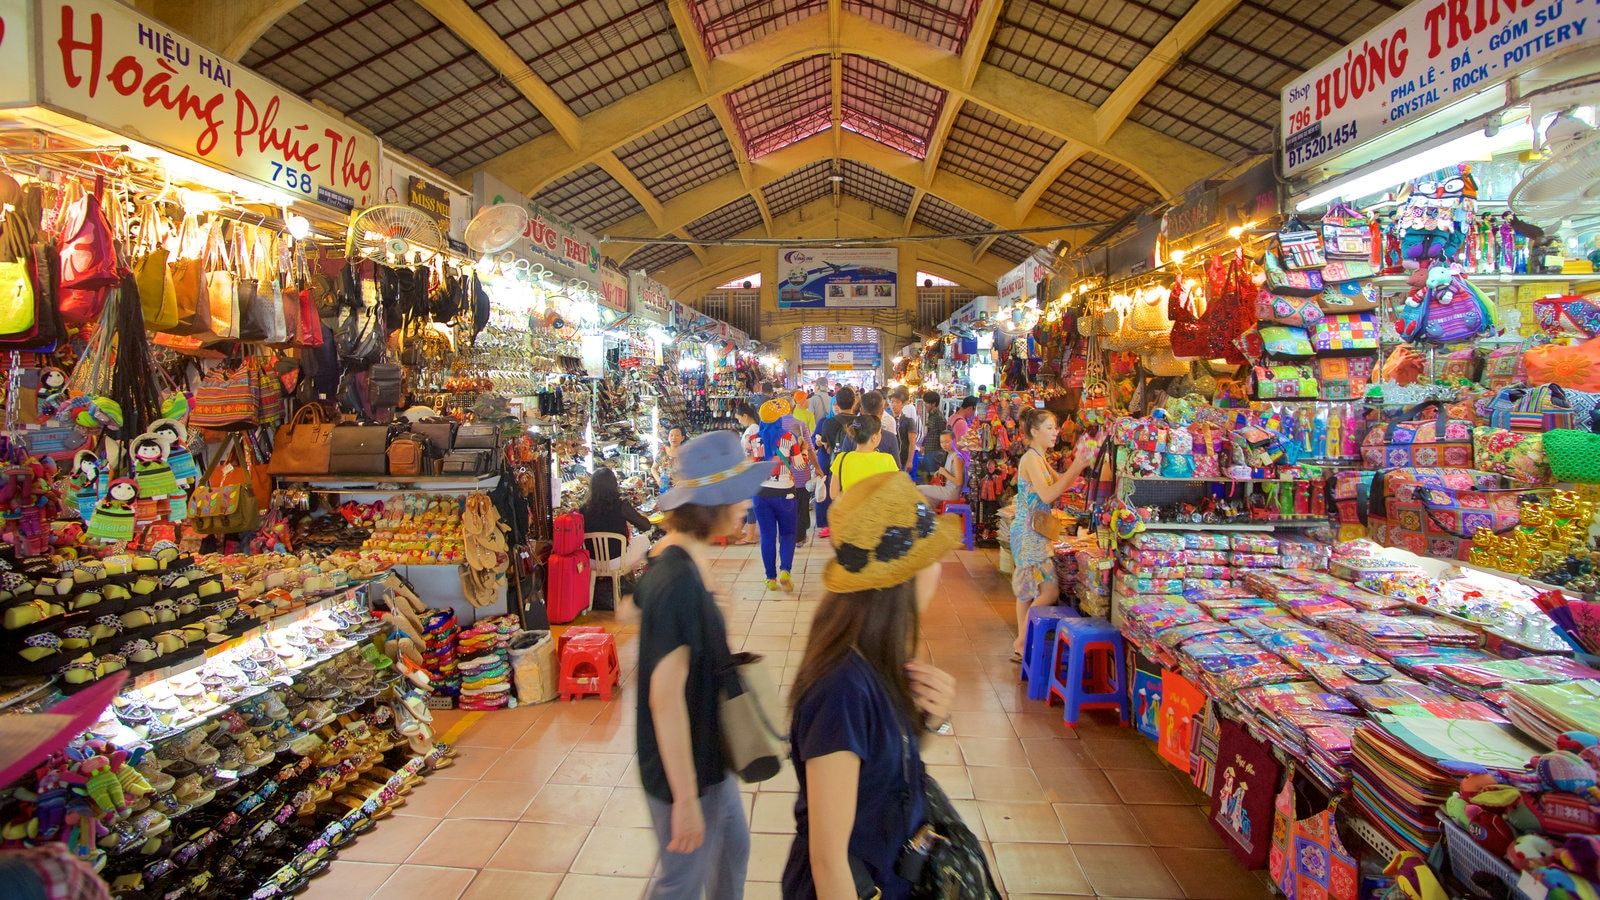 Ben Thanh Market showing markets and shopping